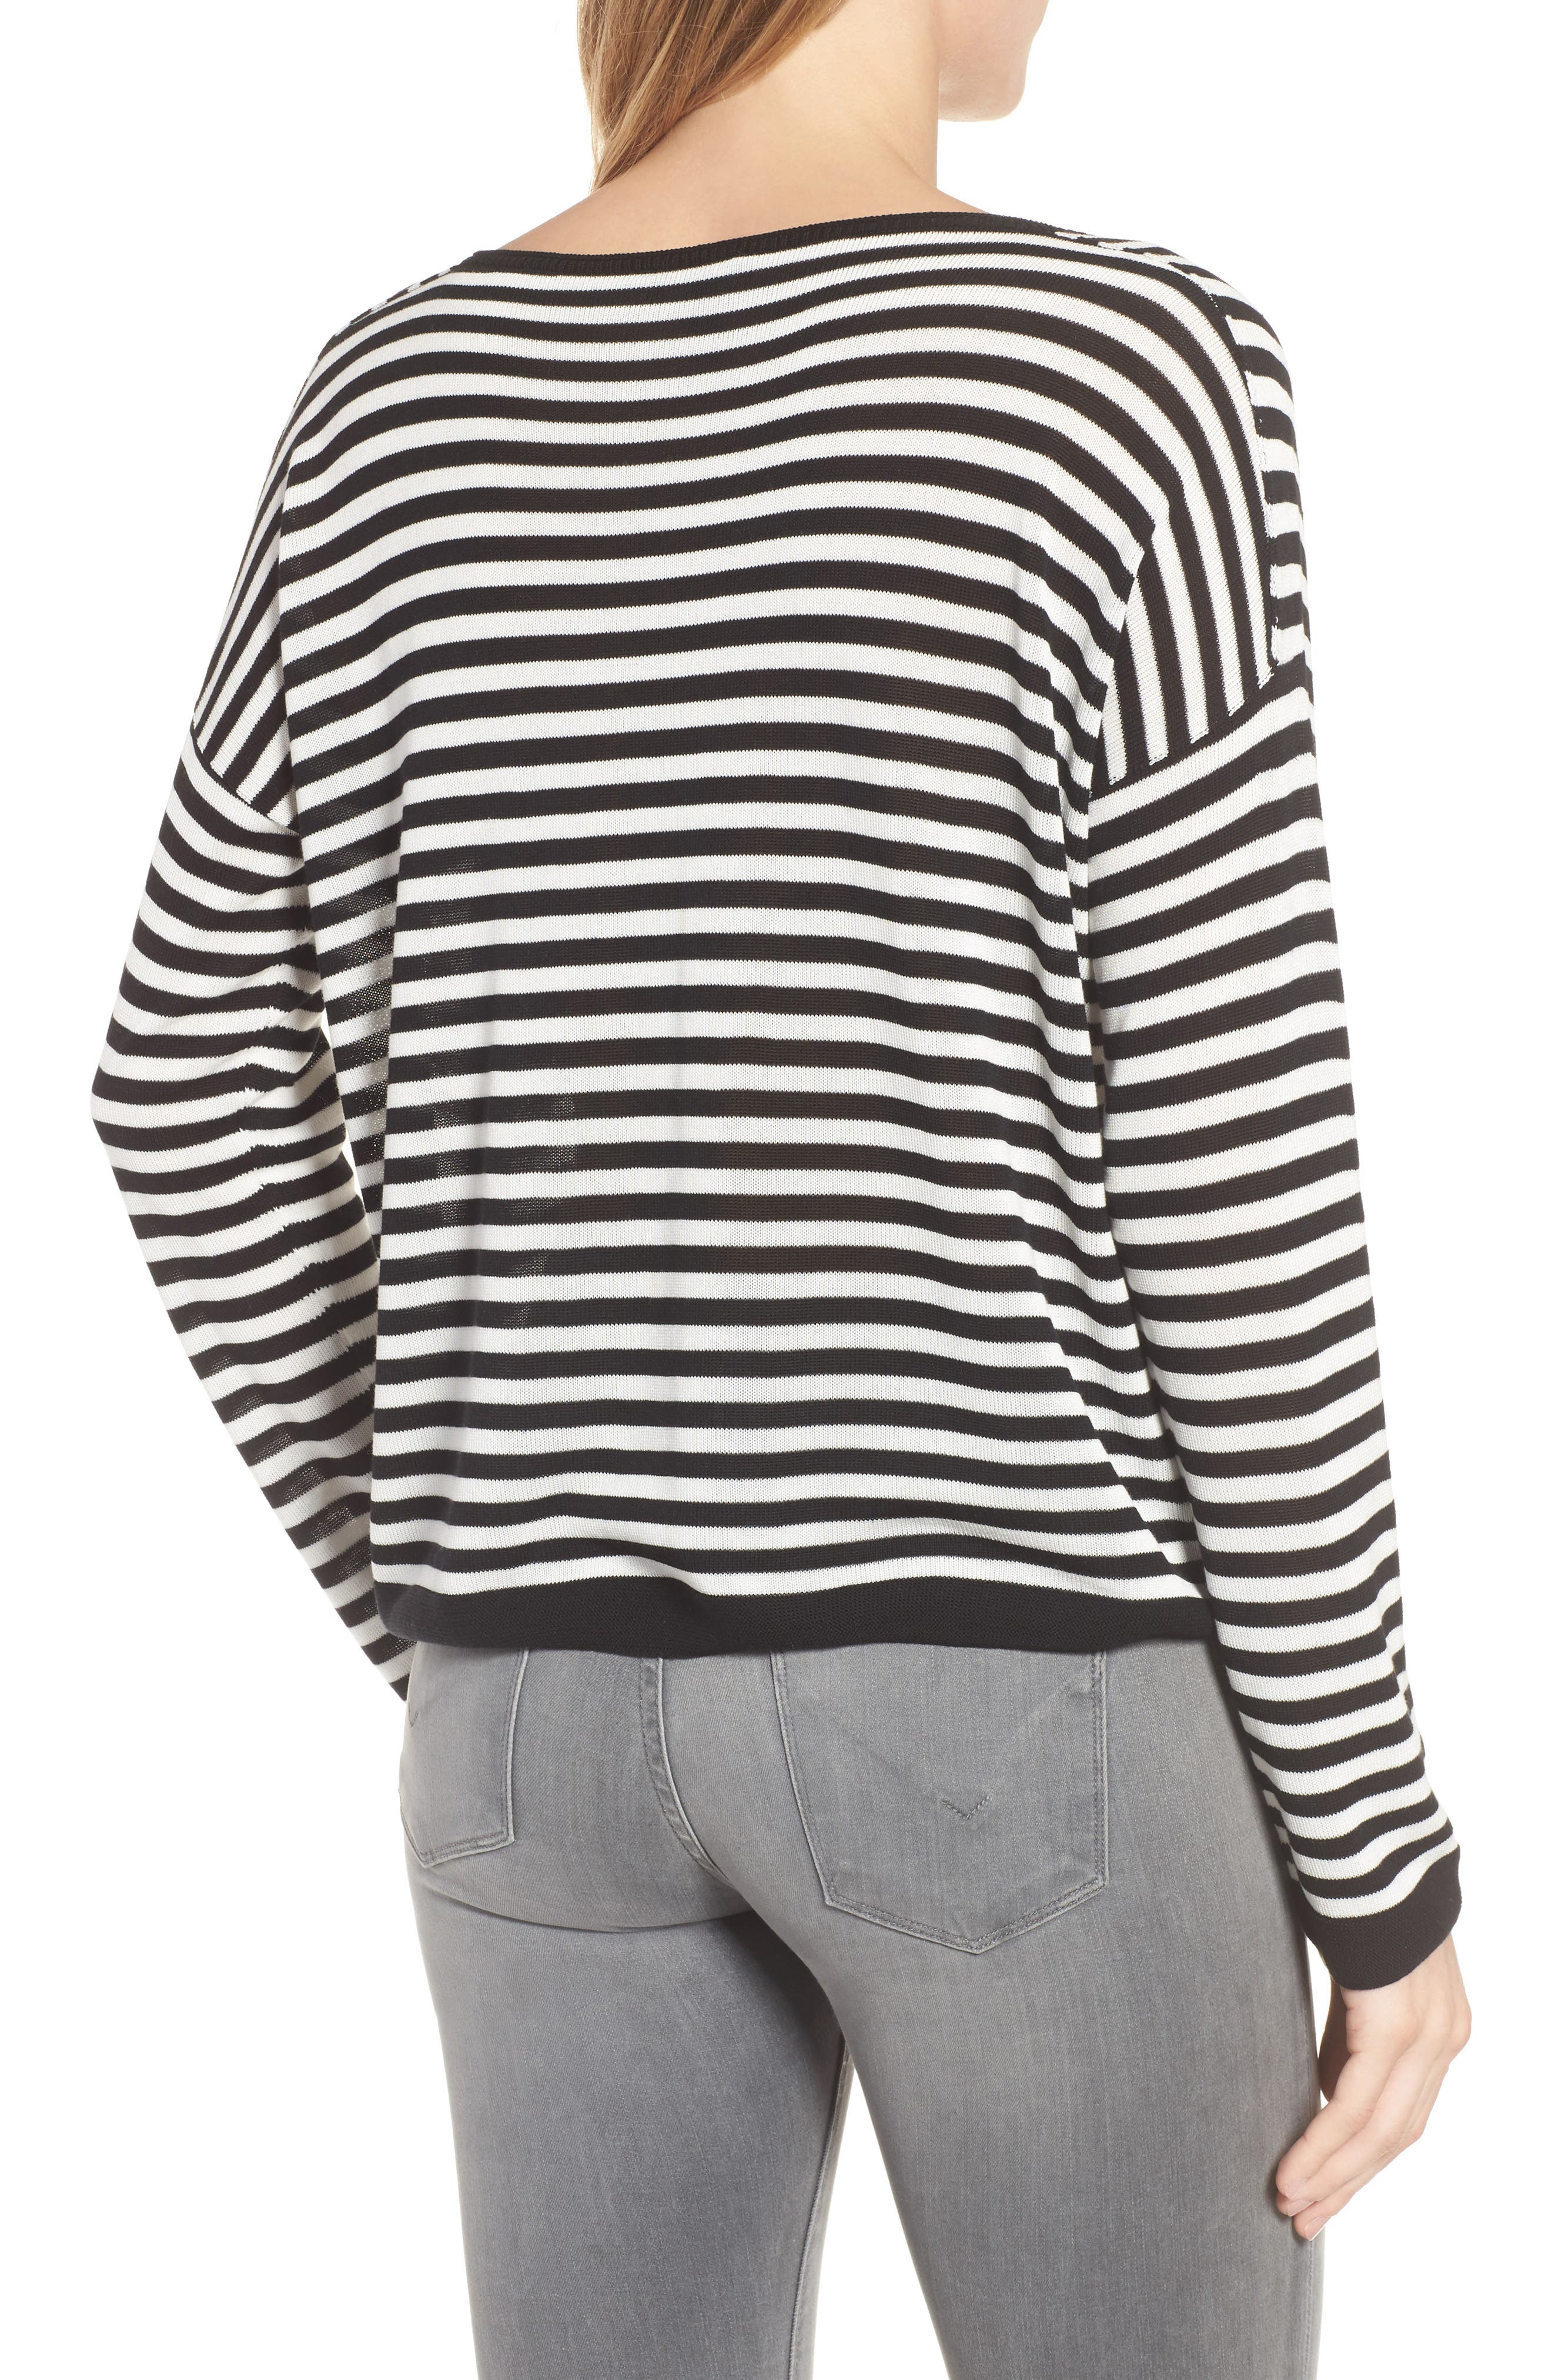 Stripe Tencel<sup>®</sup> Lyocell Knit Sweater,                             Alternate thumbnail 2, color,                             012